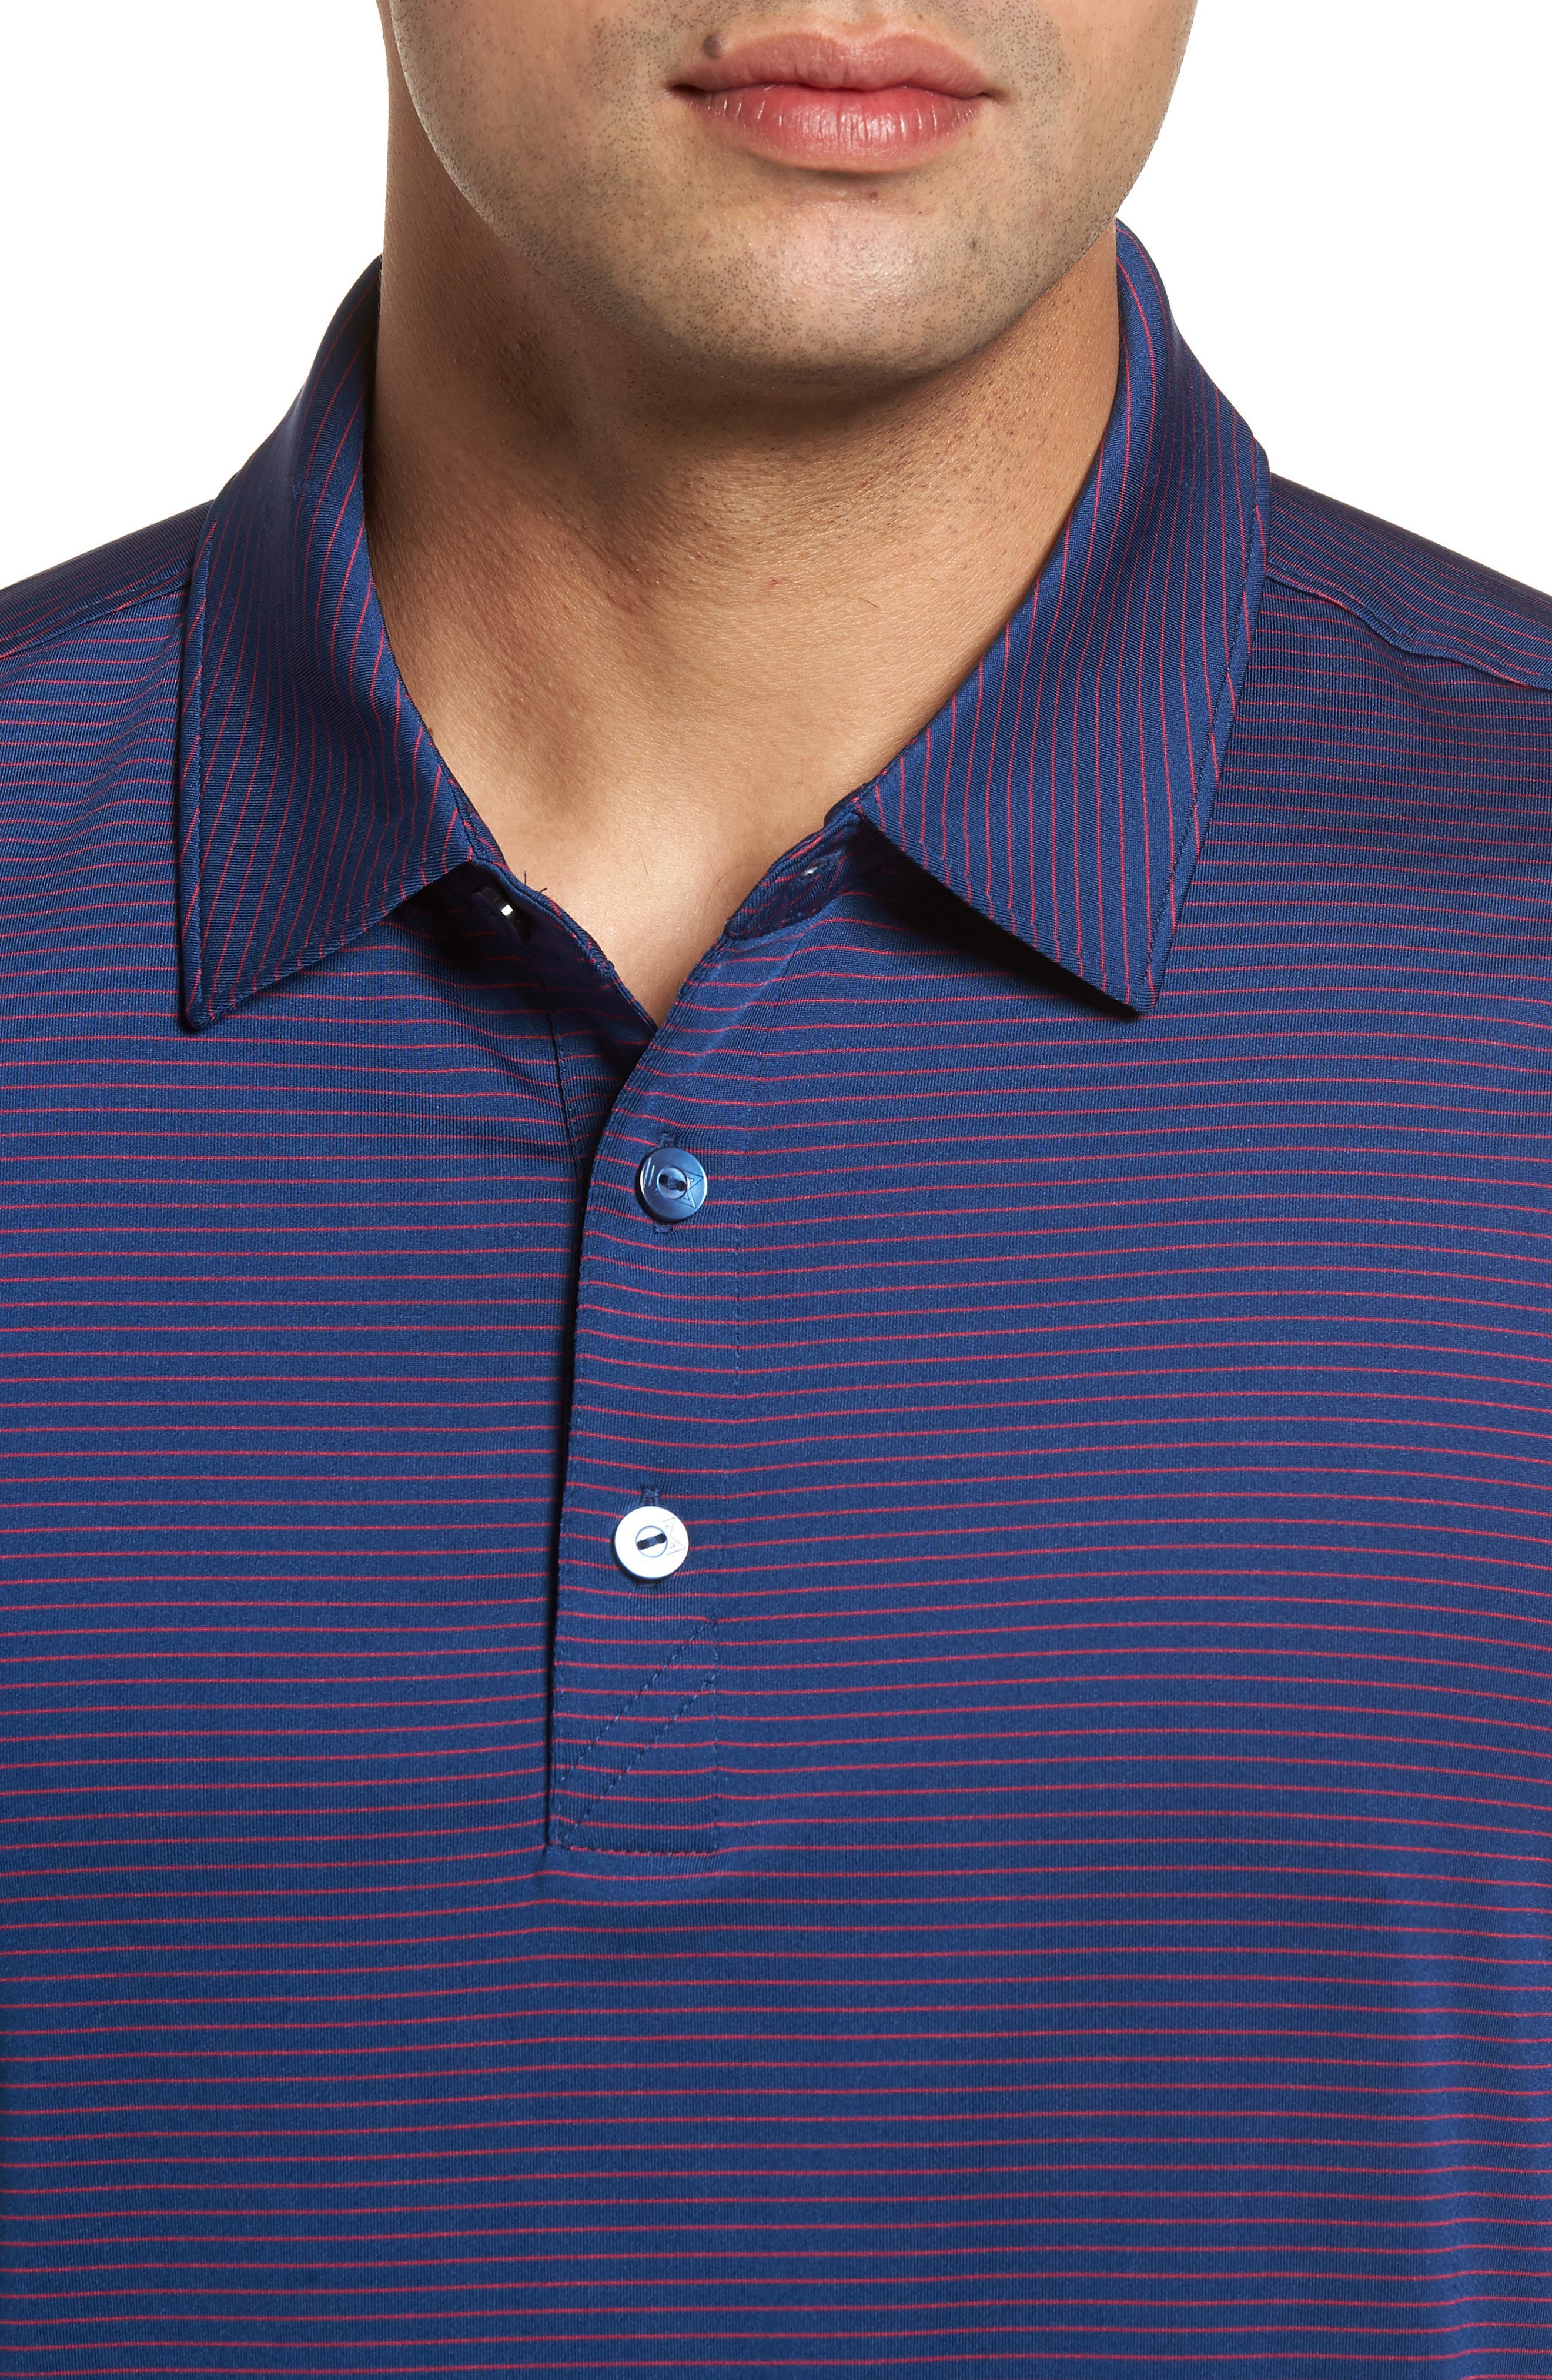 Heather DryTec Moisture Wicking Polo,                             Alternate thumbnail 4, color,                             Clarity